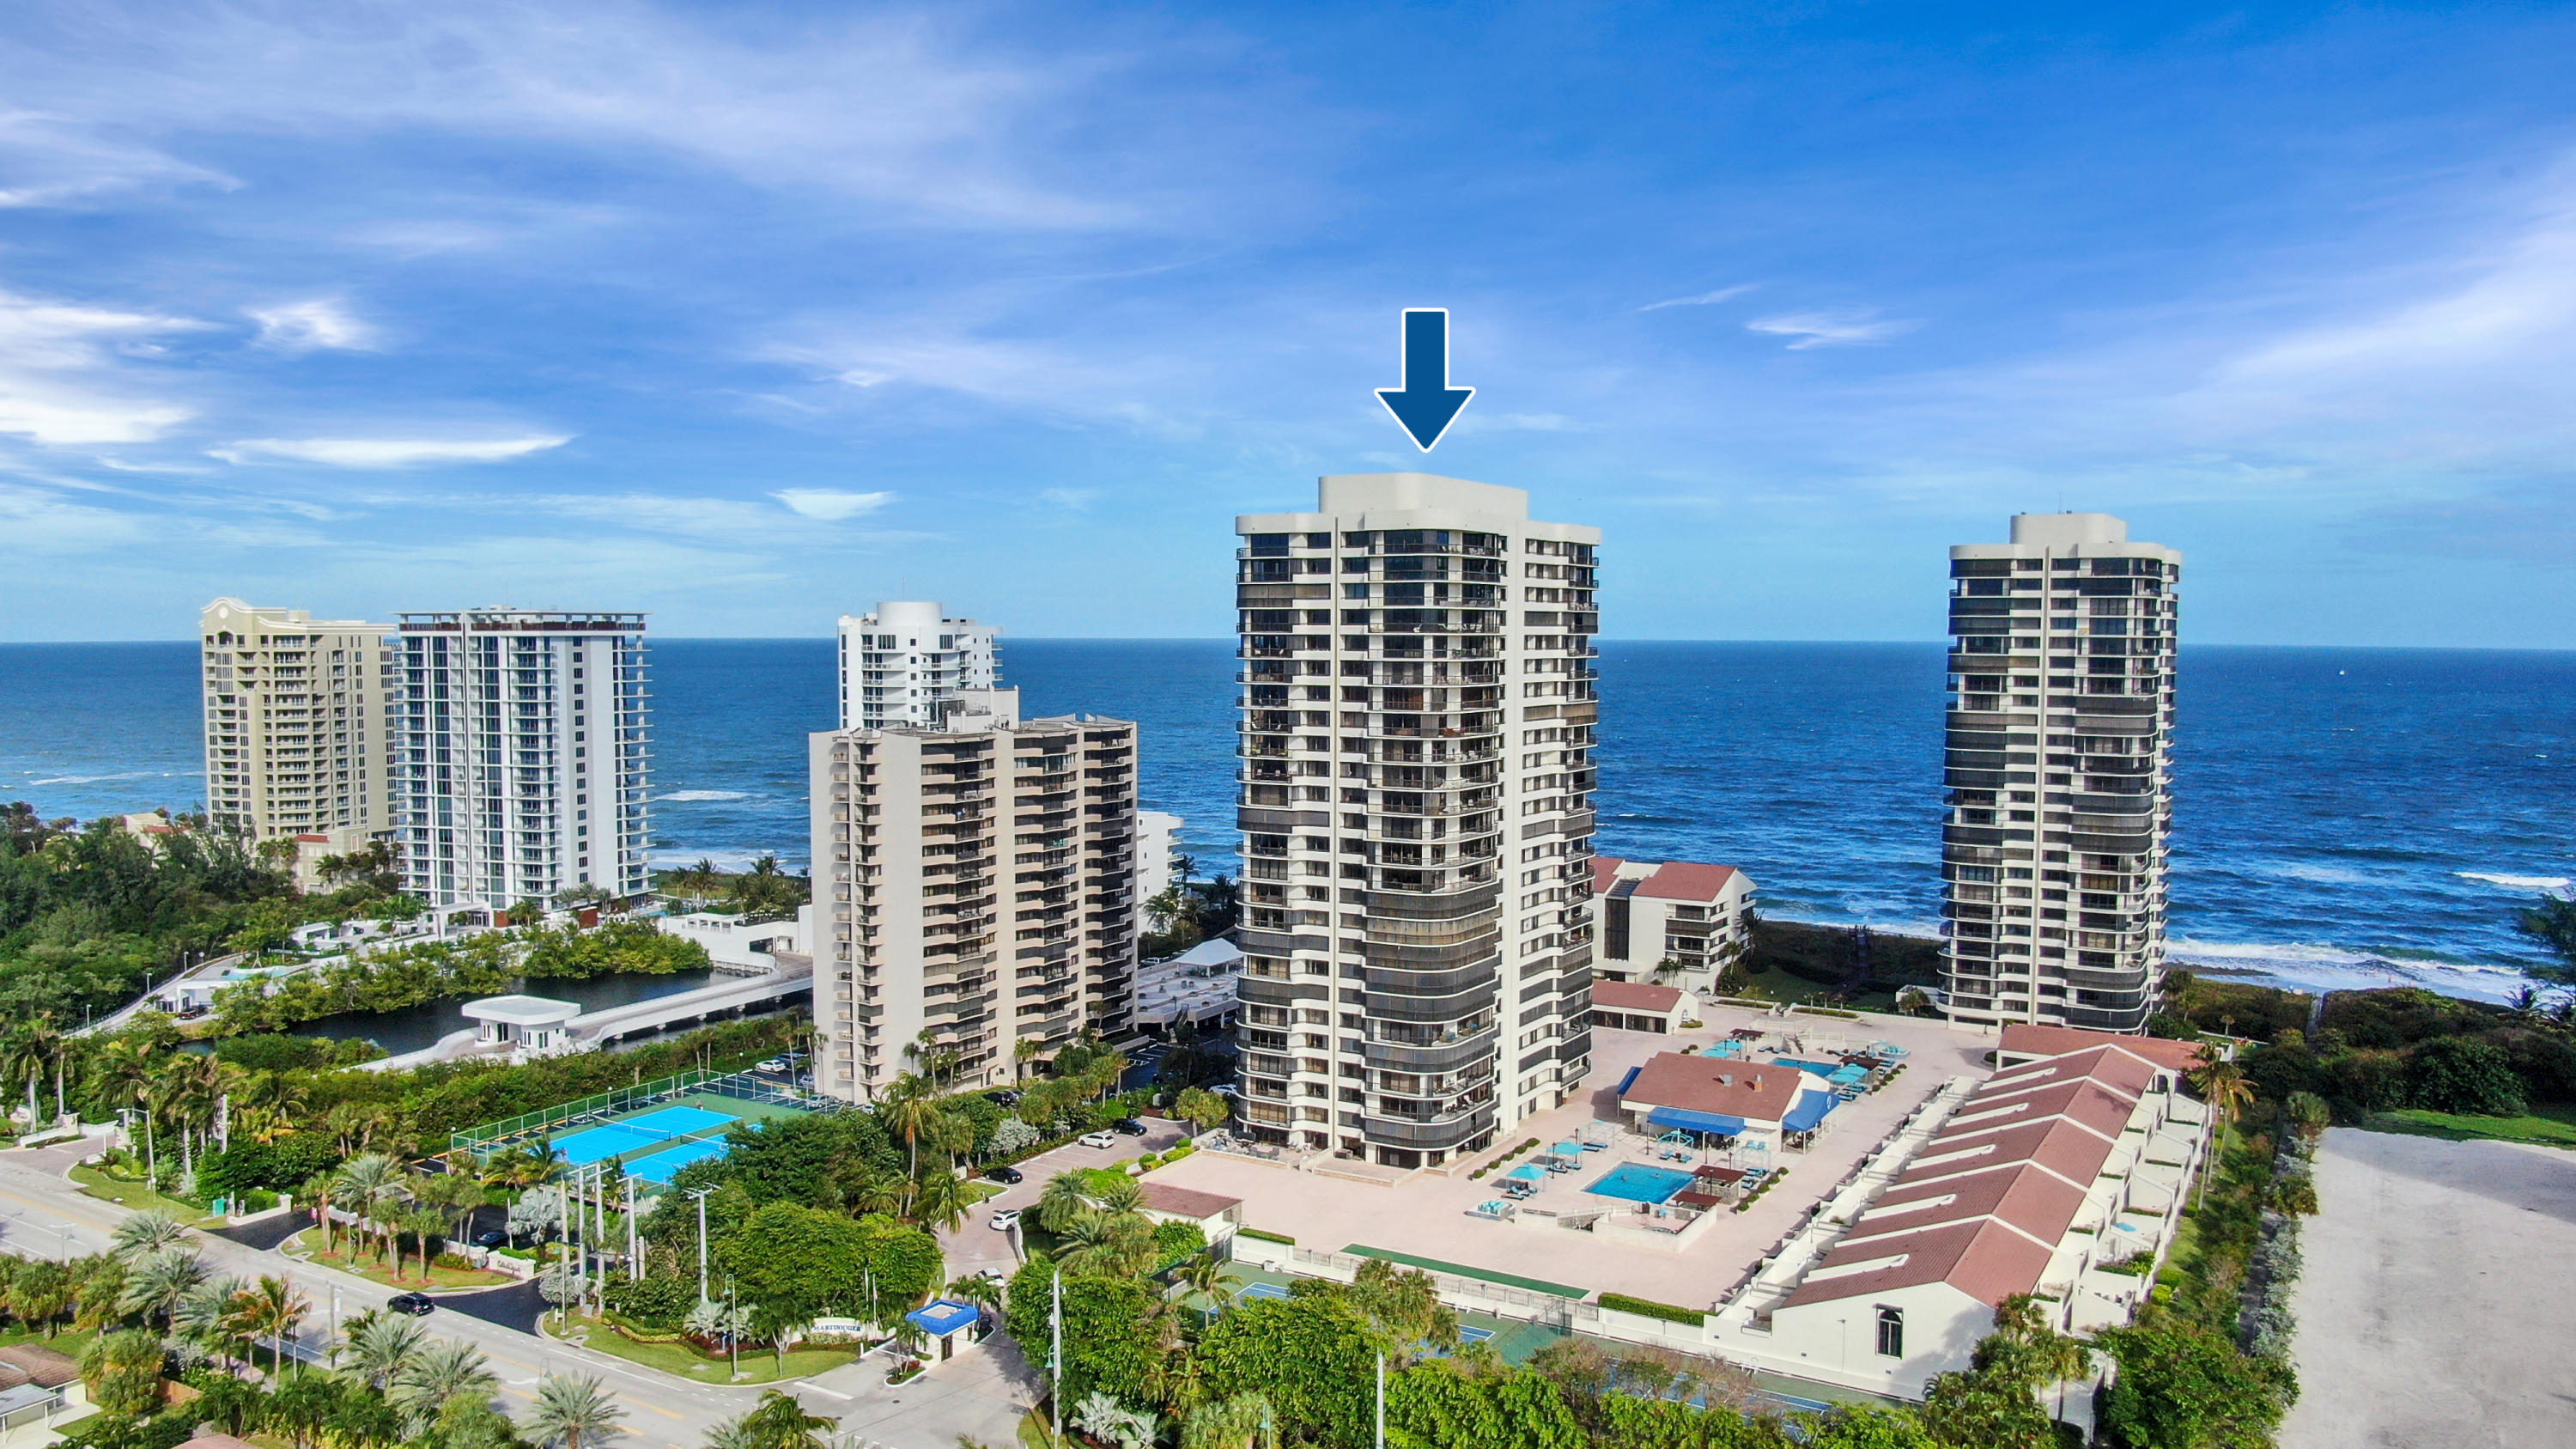 THE UNIT IS NOW VACANT!! Where can you find an OCEANFRONT CONDO with this size for this price? Partial Ocean View and open floor plan. This building, Martinique II, has a manned gate, 24-hour security, concierge, 2 pools, Bocce Courts, gas grills, billiards, tennis courts, fitness center, onsite restaurant, library, and garage parking. This Gorgeous 3 bedroom 4 bathroom condo in Martinique II is priced for an end-user to come and put their personal final touches and/or renovations and still be under MARKET VALUE!! Perfect RARE Opportunity!